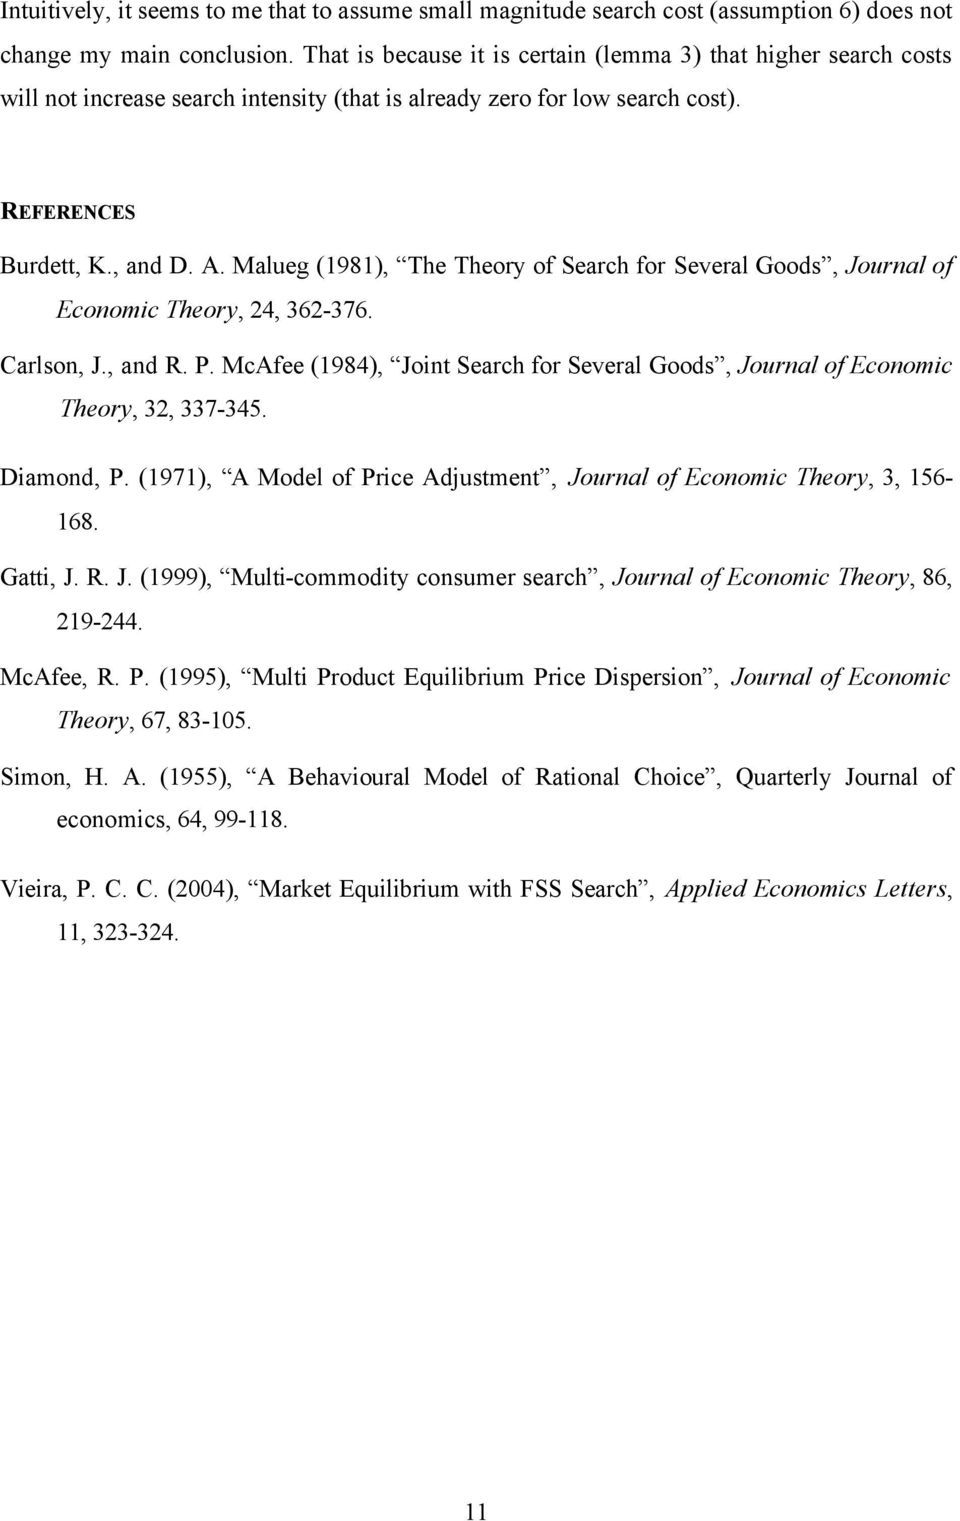 Malueg (98, The Theory of Search for Several Goods, Journal of Economic Theory, 4, 36-376. Carlson, J., and R. P. McAfee (984, Joint Search for Several Goods, Journal of Economic Theory, 3, 337-345.